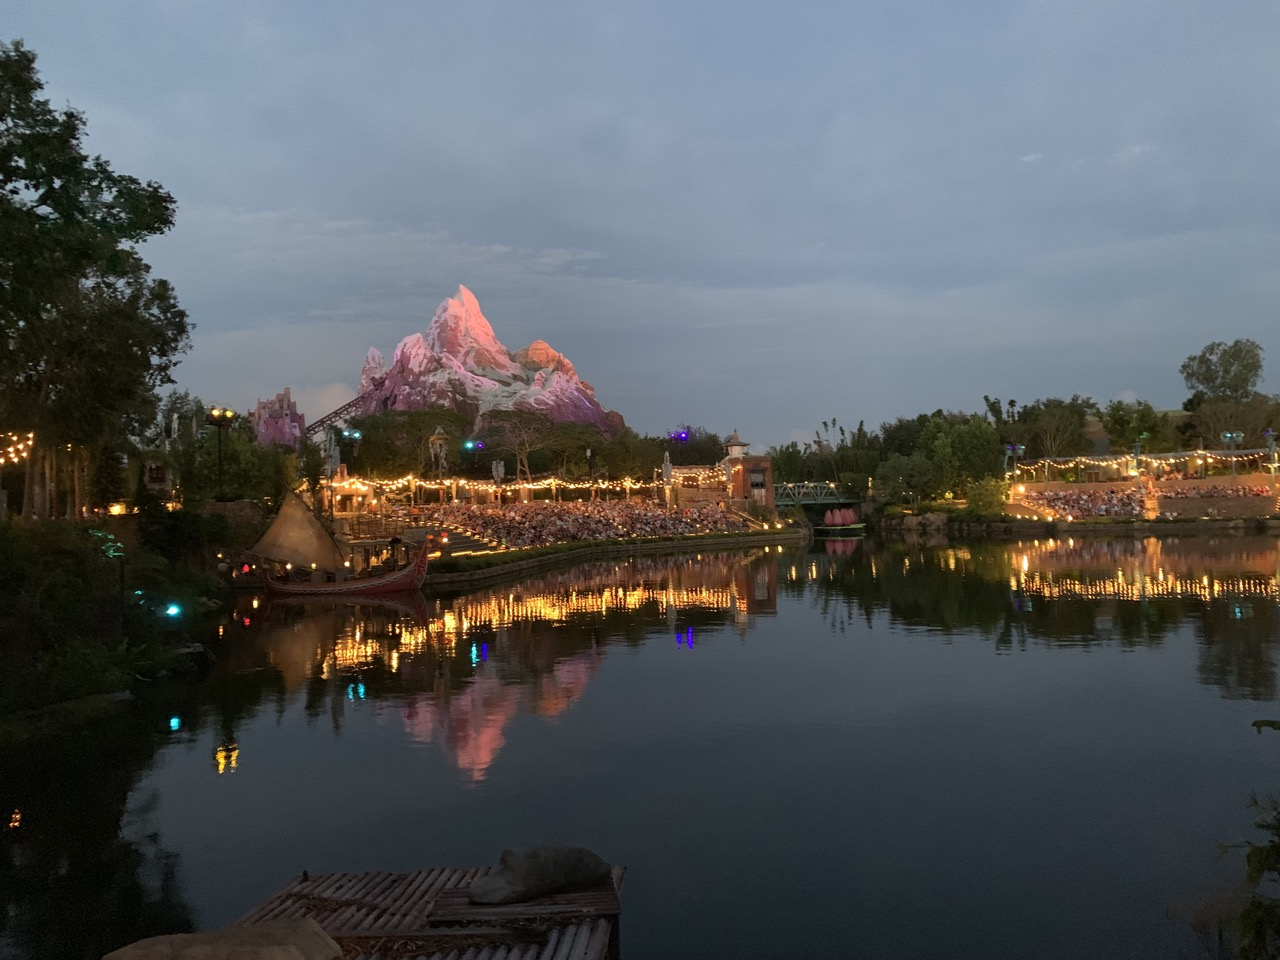 disney world animal kingdom after hours 03 rivers of light crowd.jpeg